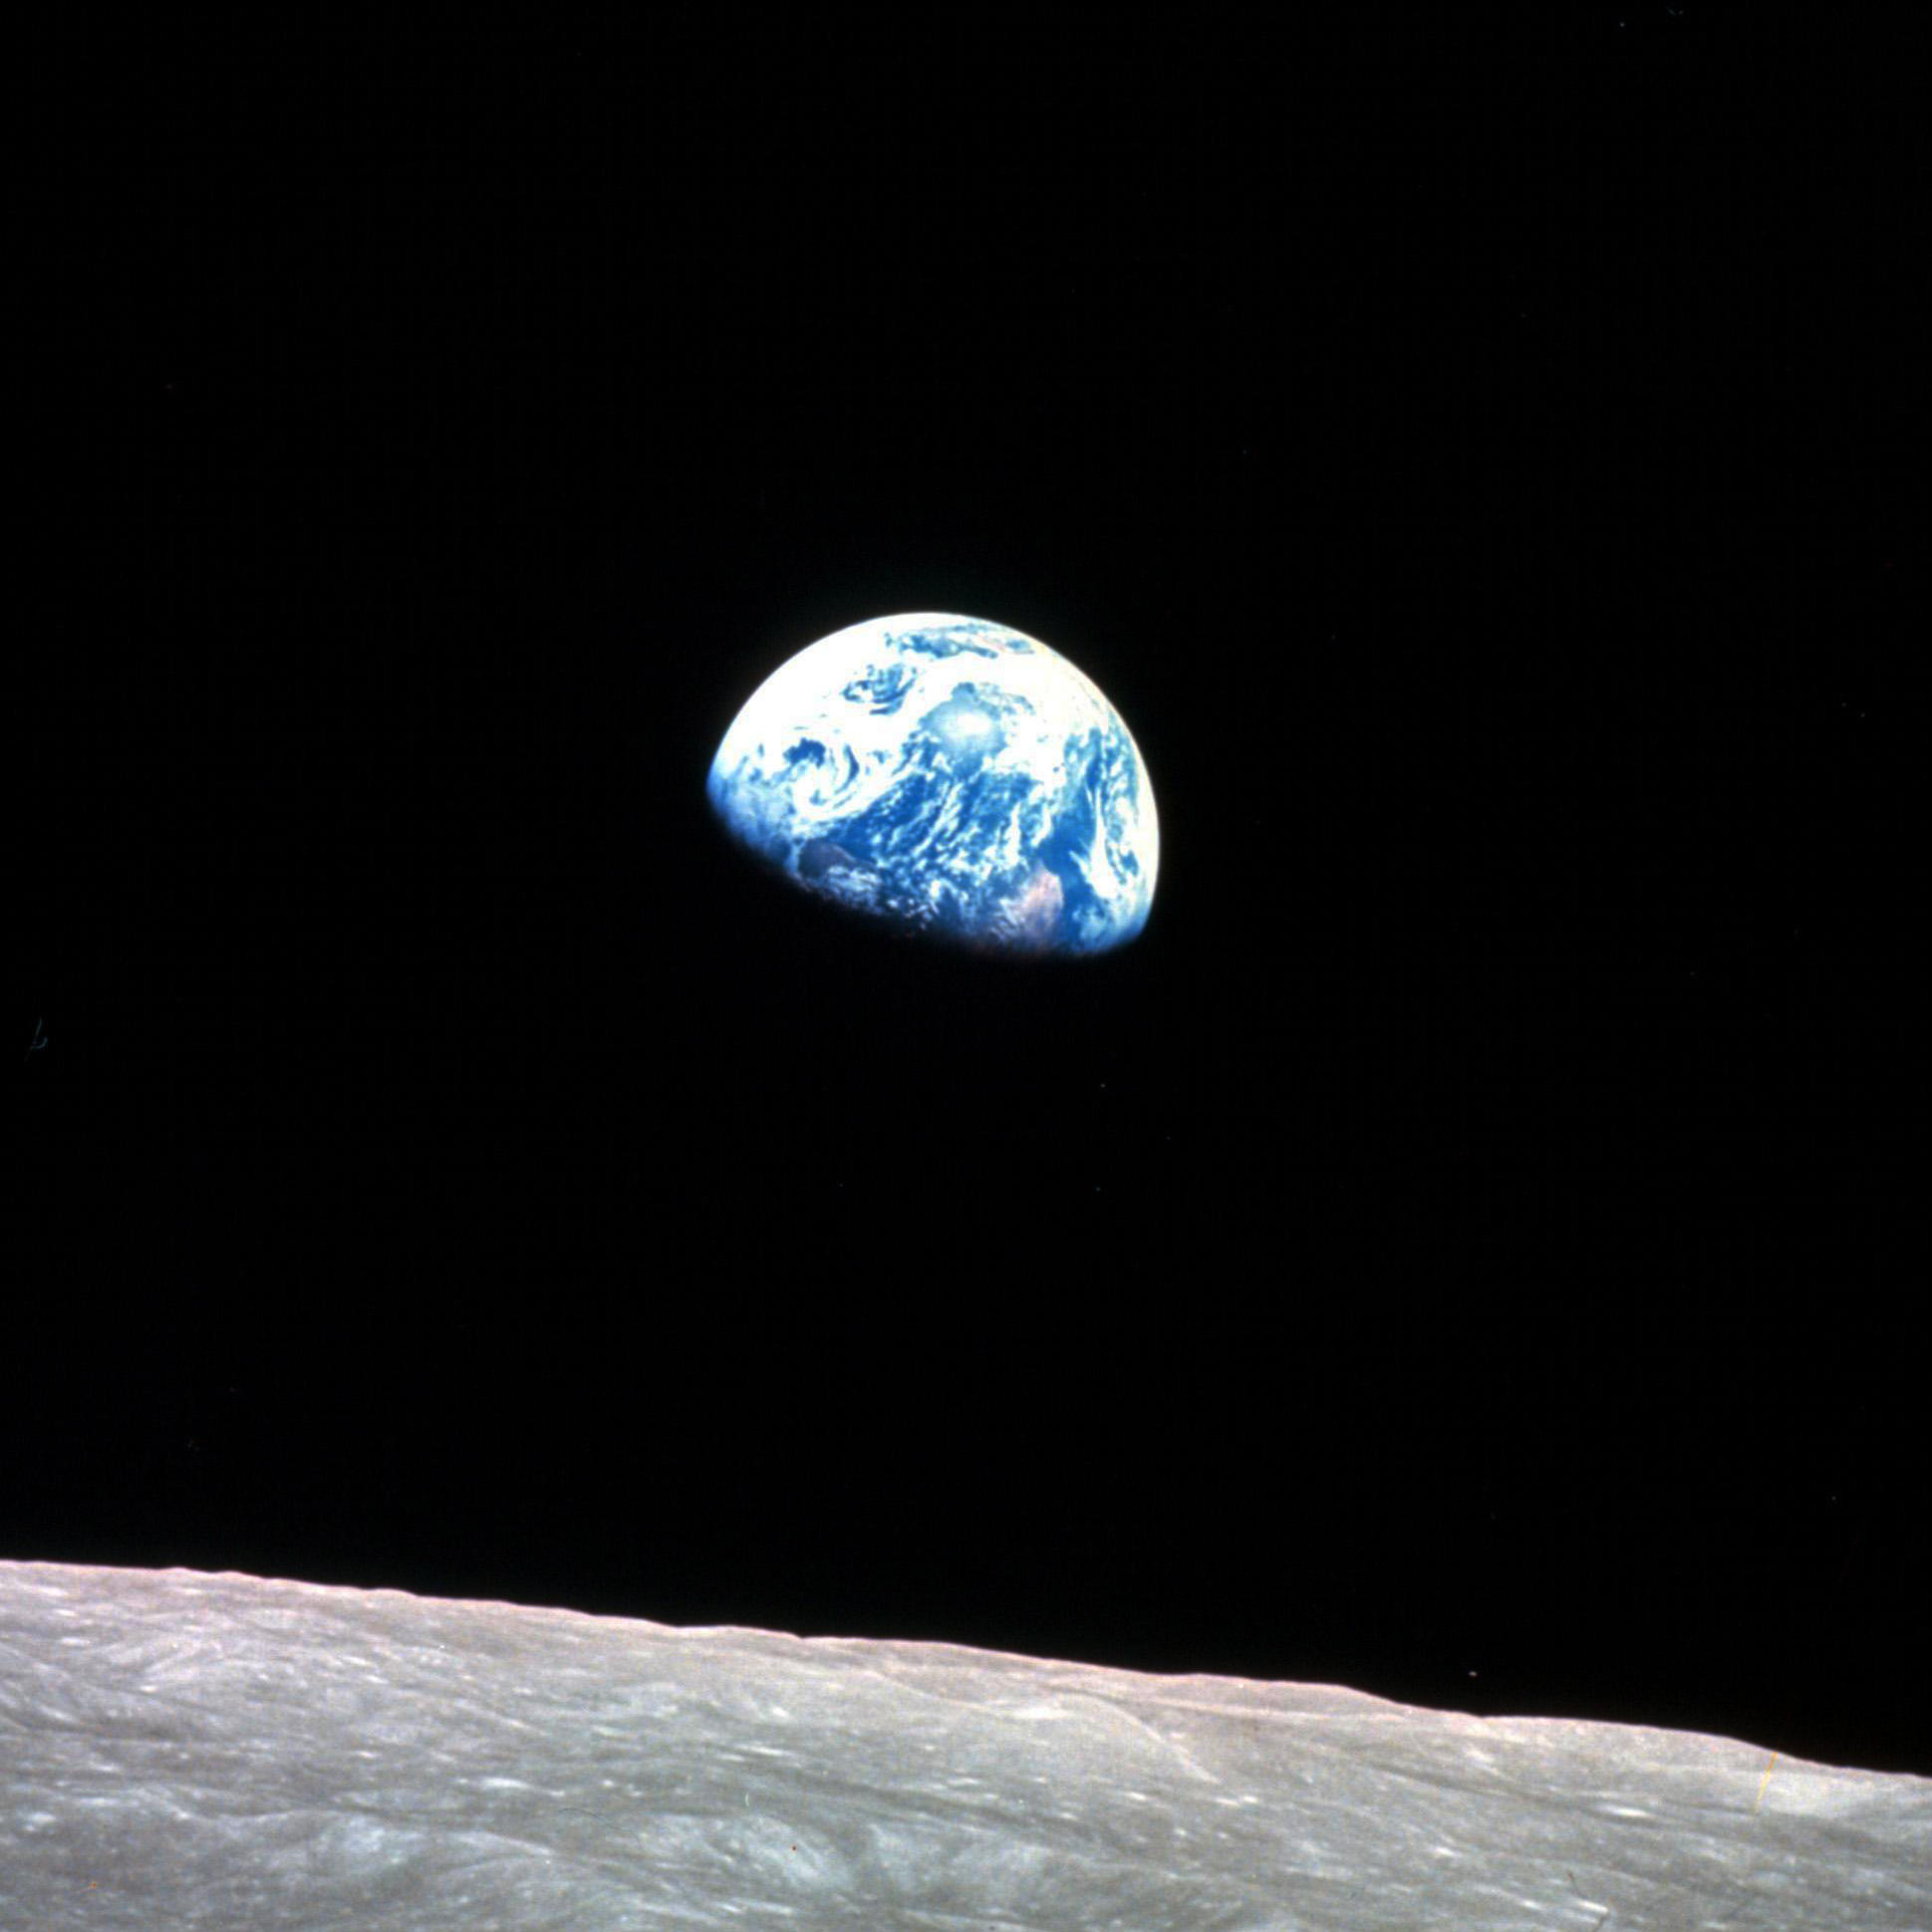 Apollo 8 'Earthrise' photographer calls Northwest home